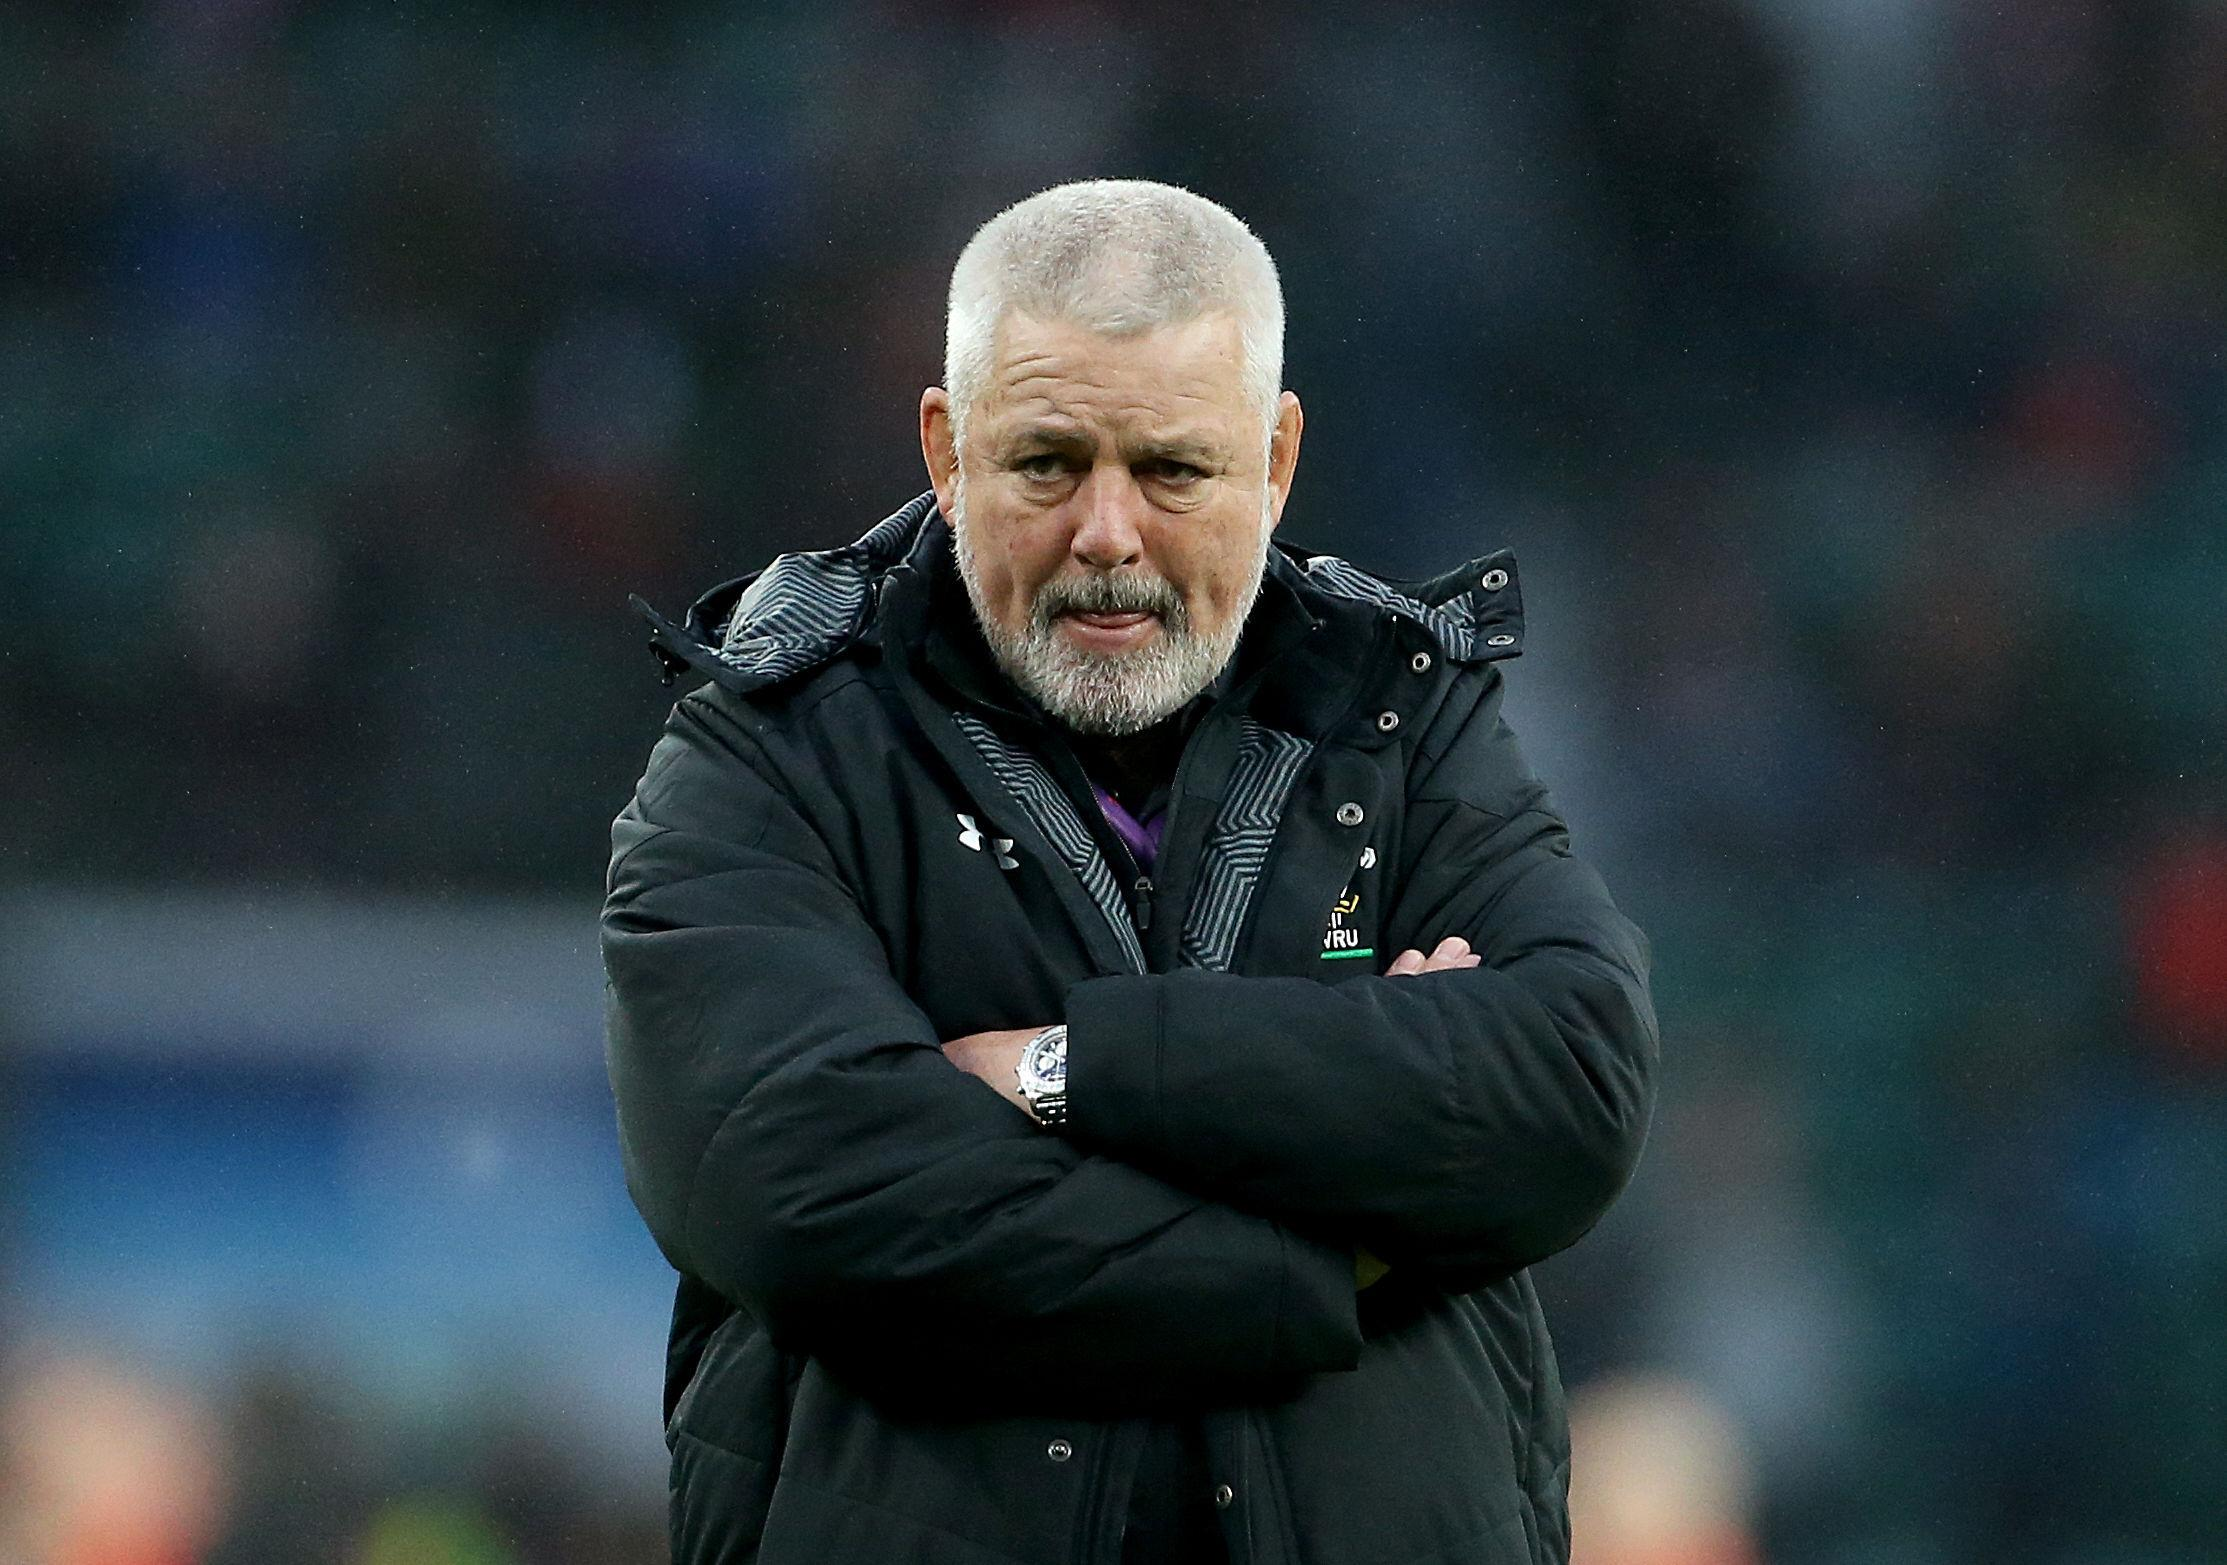 Wales coach Warren Gatland was left fuming by the decision